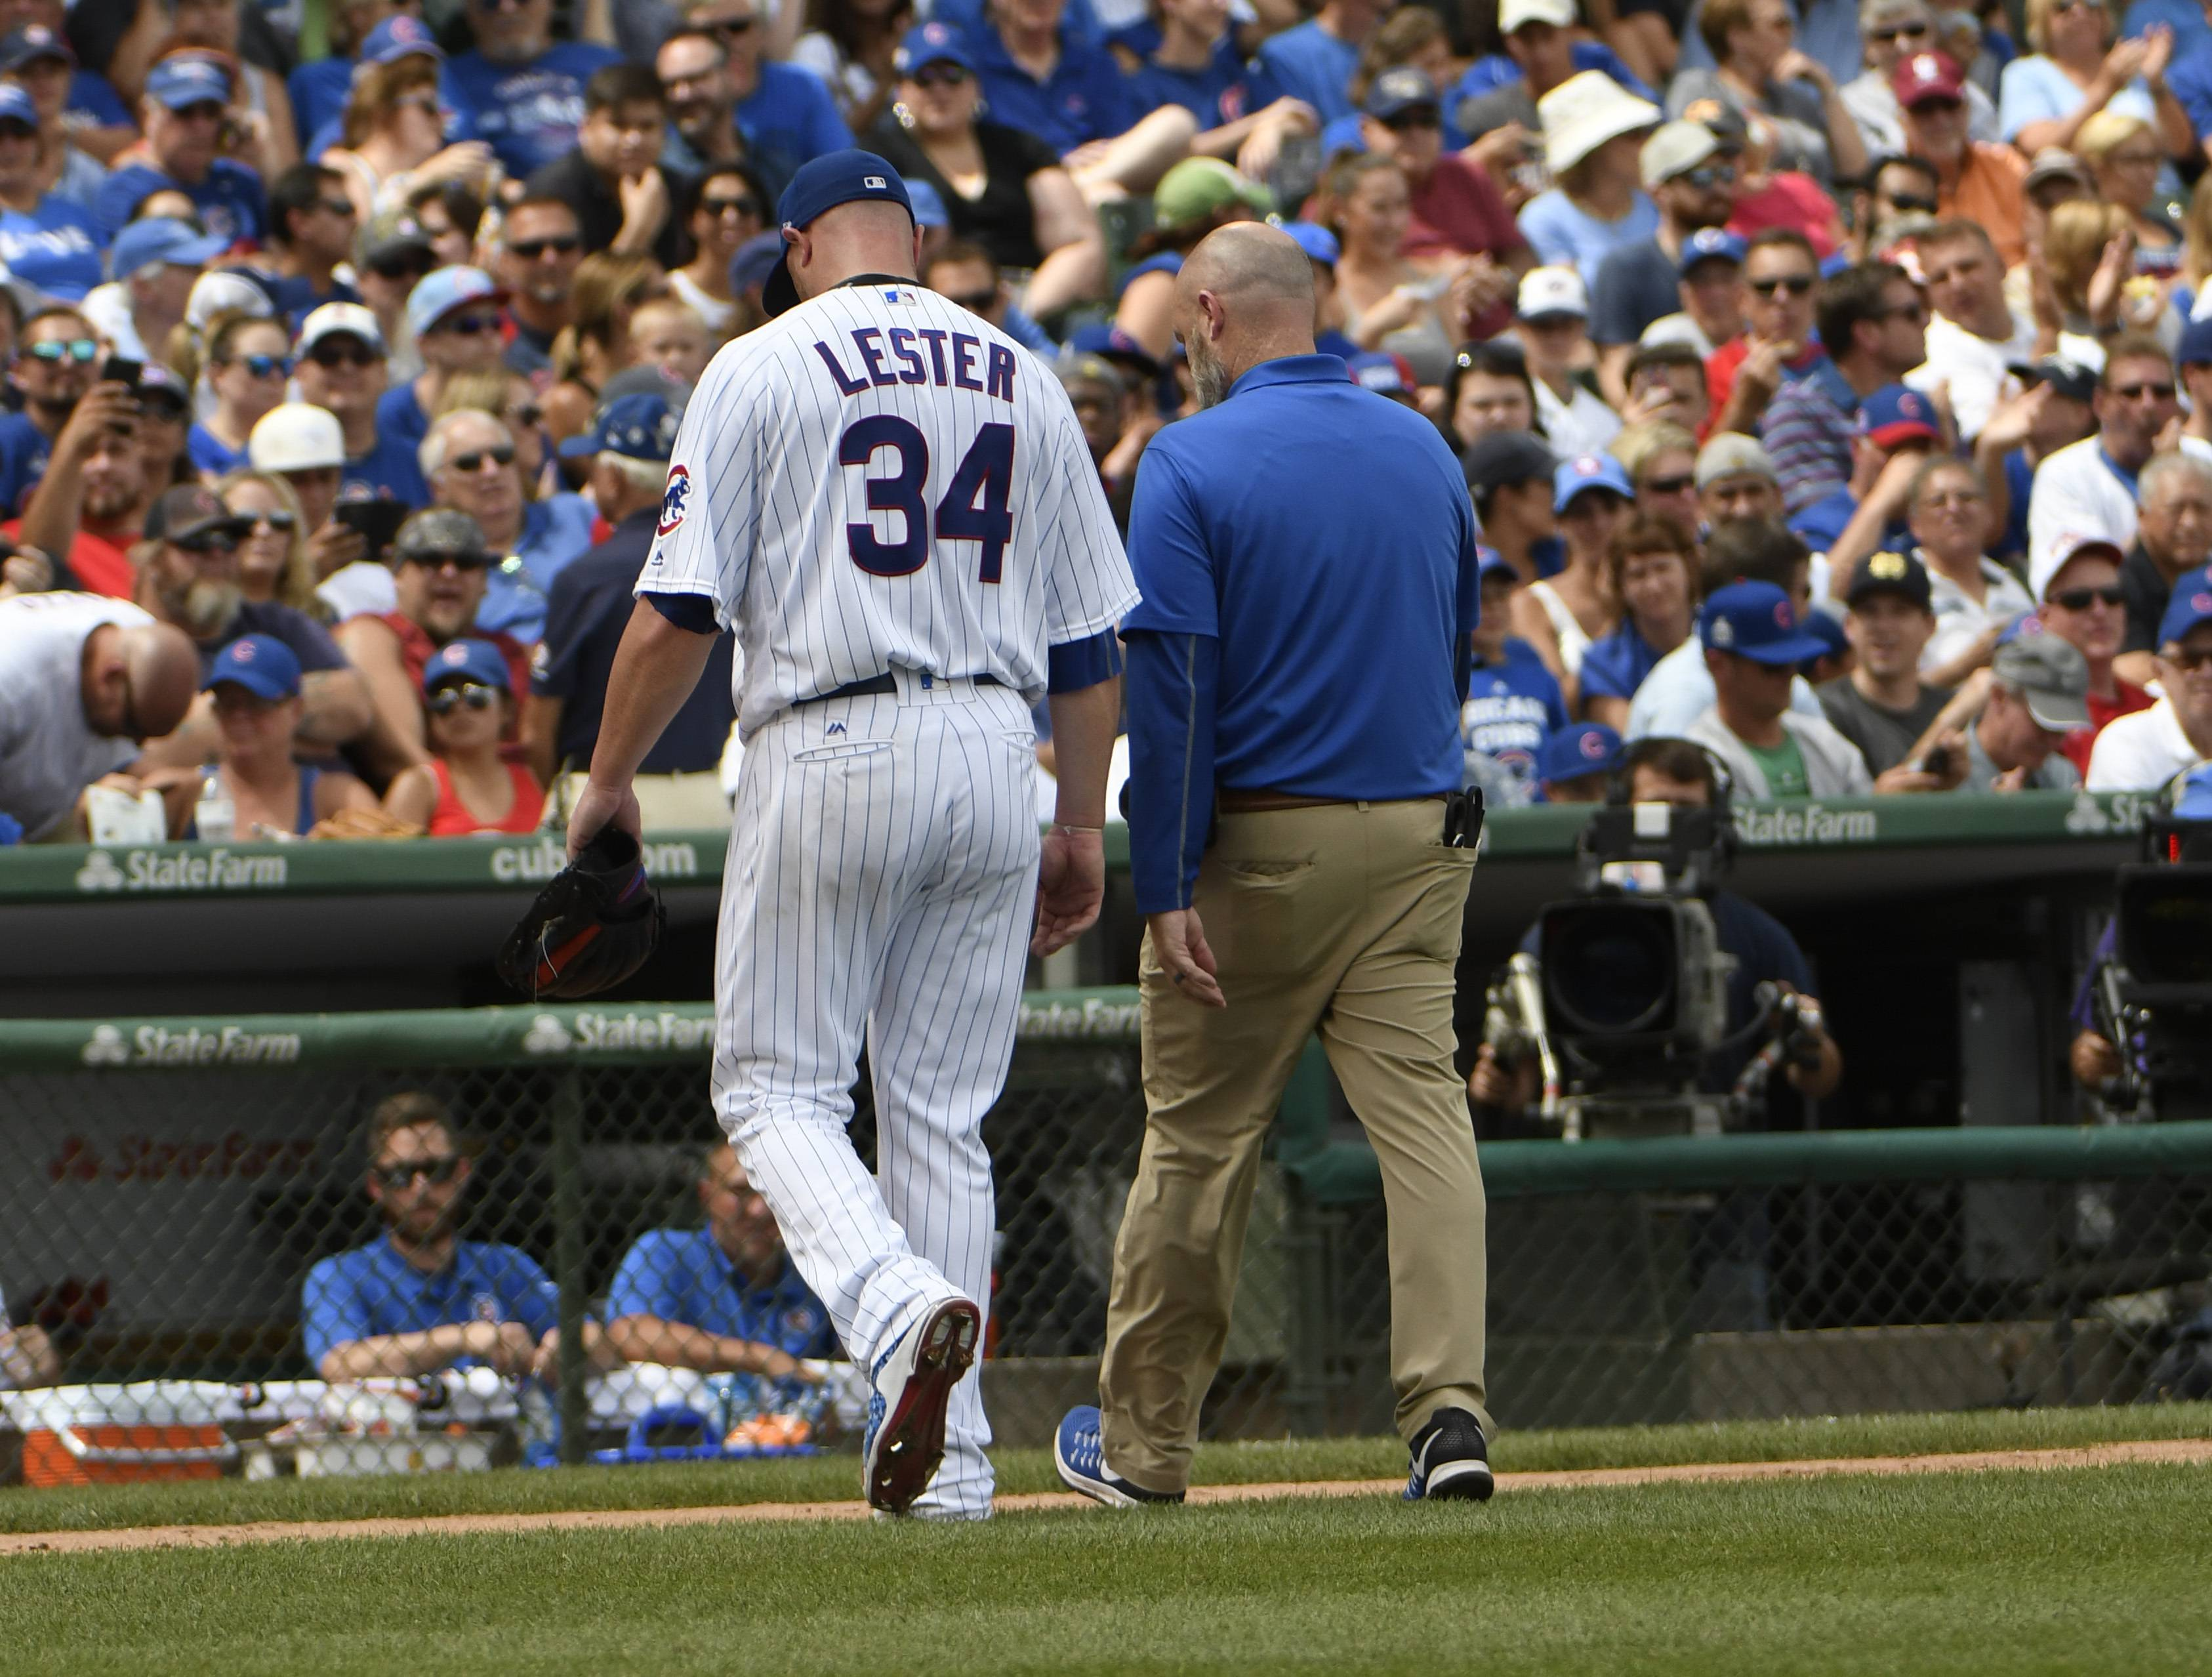 Chicago Cubs starting pitcher Jon Lester (34) leaves the game during the second inning of a baseball game against the Cincinnati Reds, Thursday, Aug. 17, 2017, in Chicago.